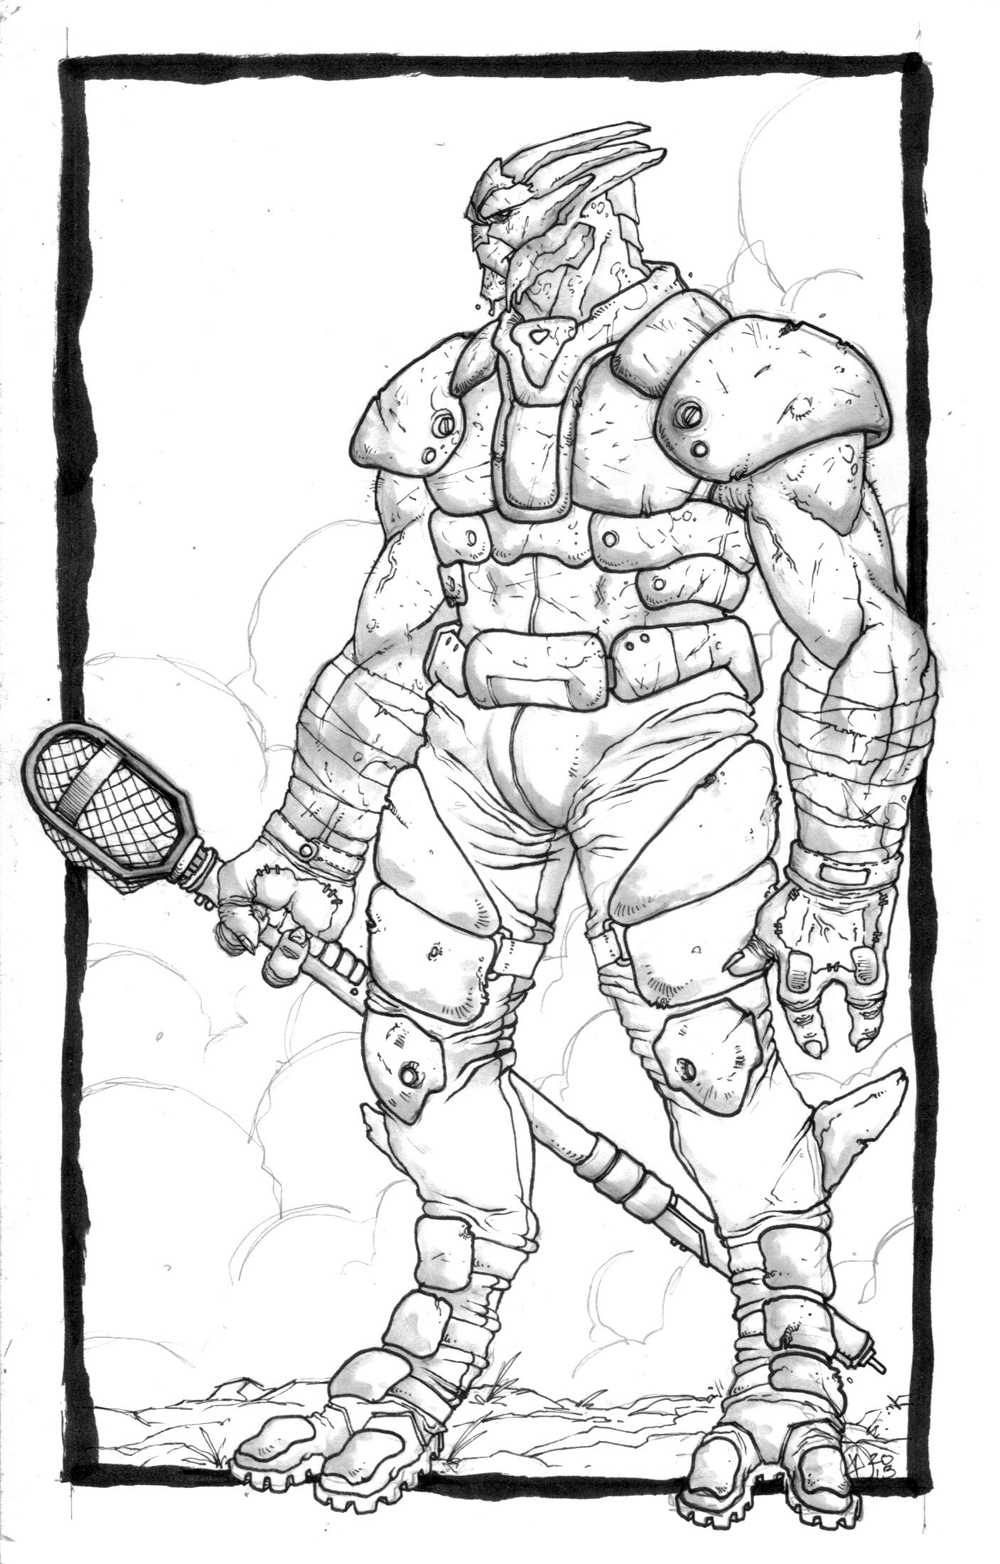 TURIAN ATHLETE by COUNTPAGAN